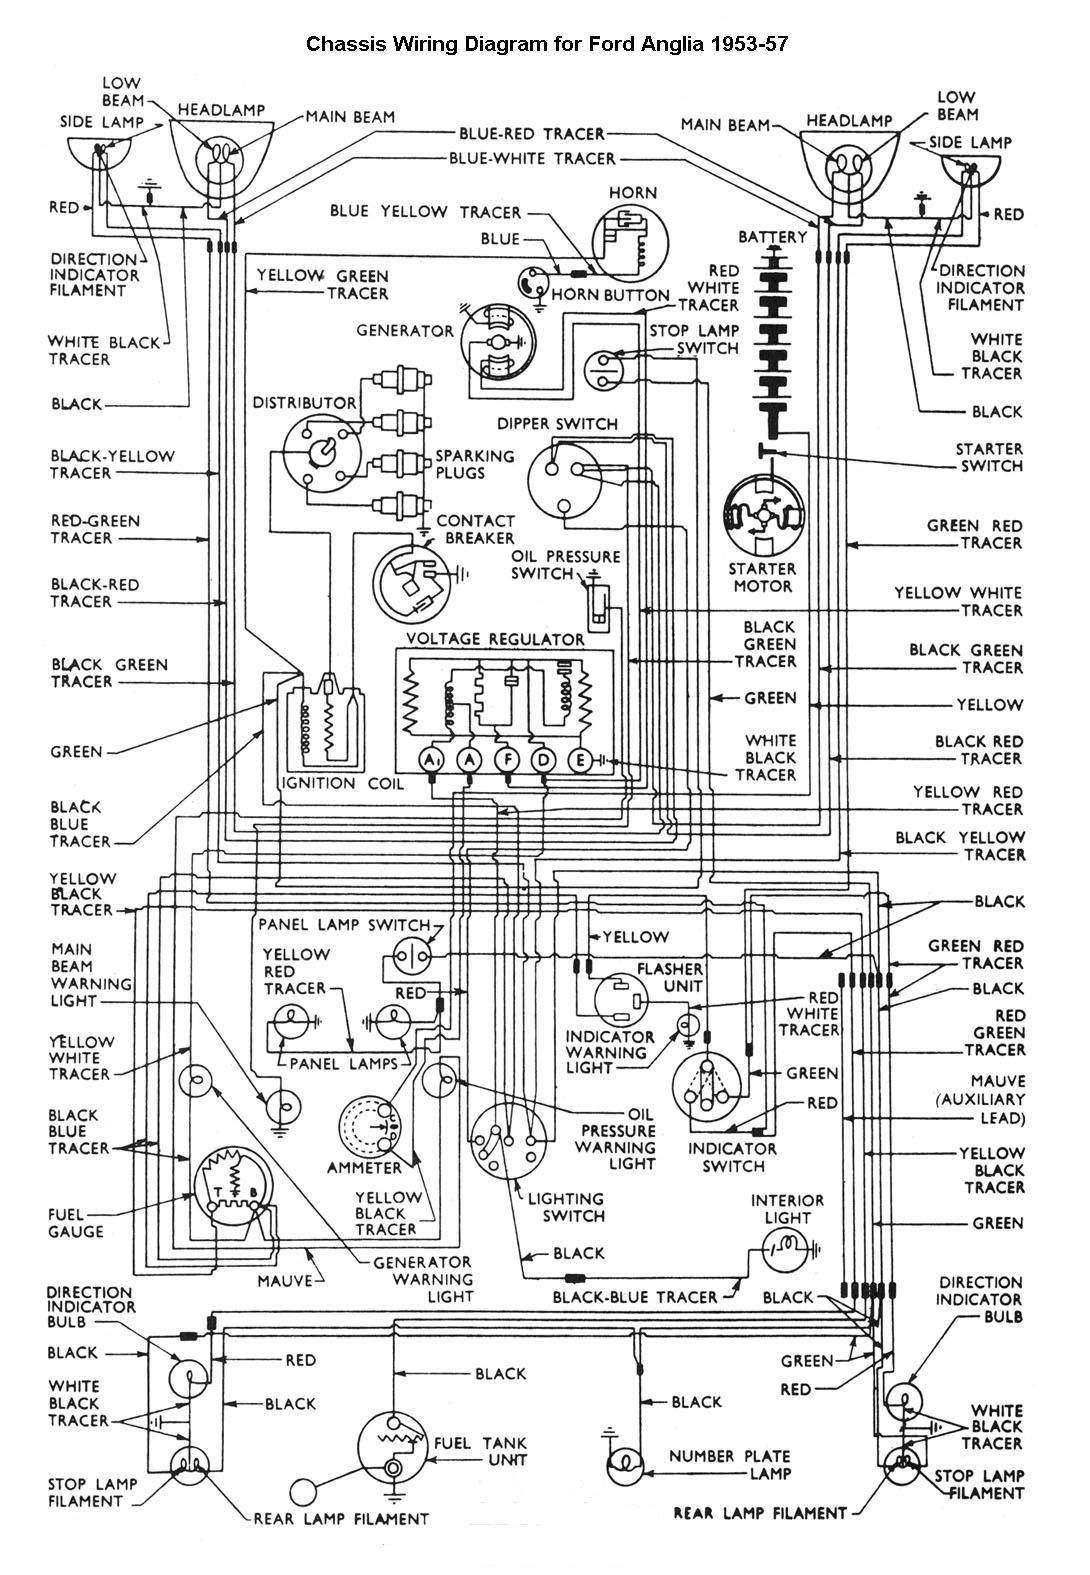 hight resolution of car wiring diagram mech truck repair cars motor carcar wiring diagram